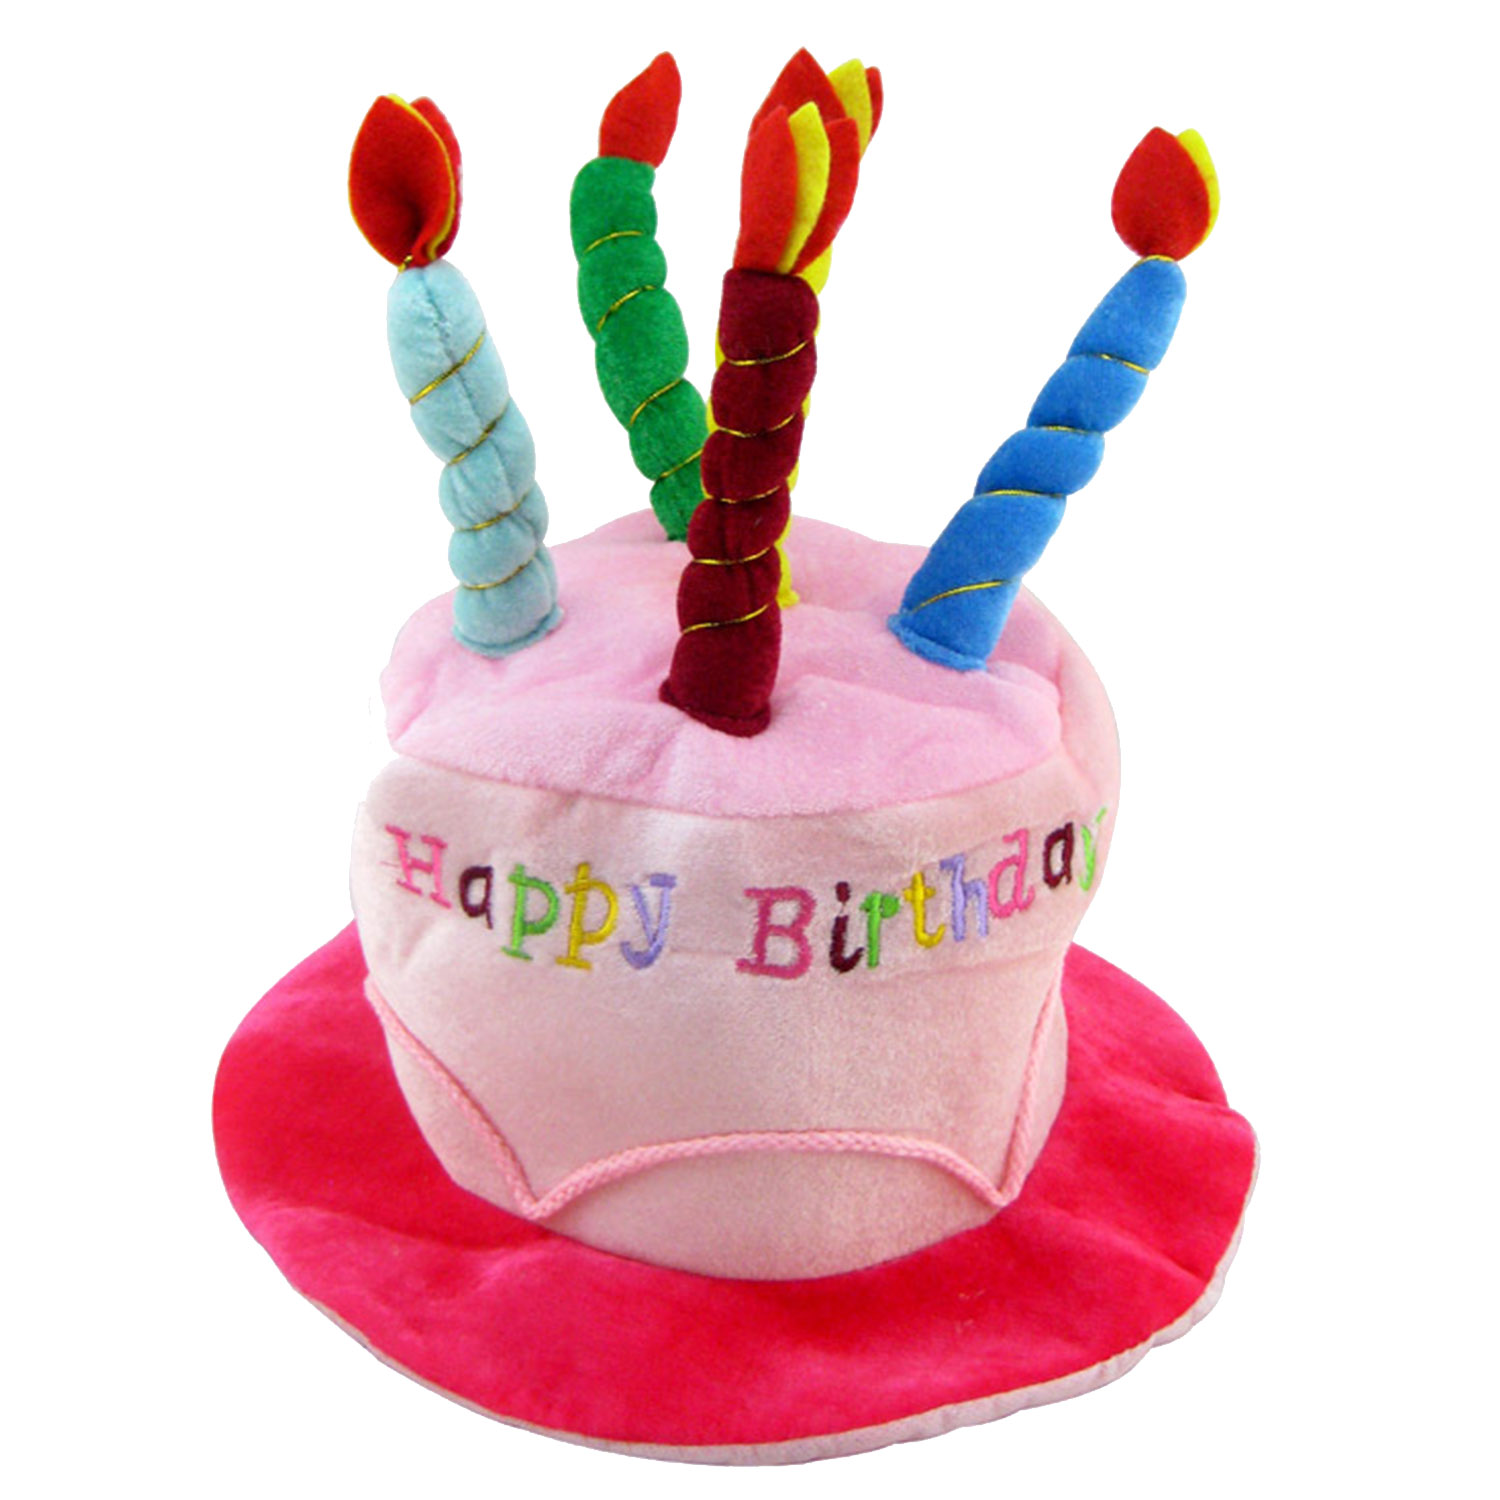 Admirable Adults Happy Birthday Hat With Cake Candles Soft Birthday Party Funny Birthday Cards Online Inifofree Goldxyz